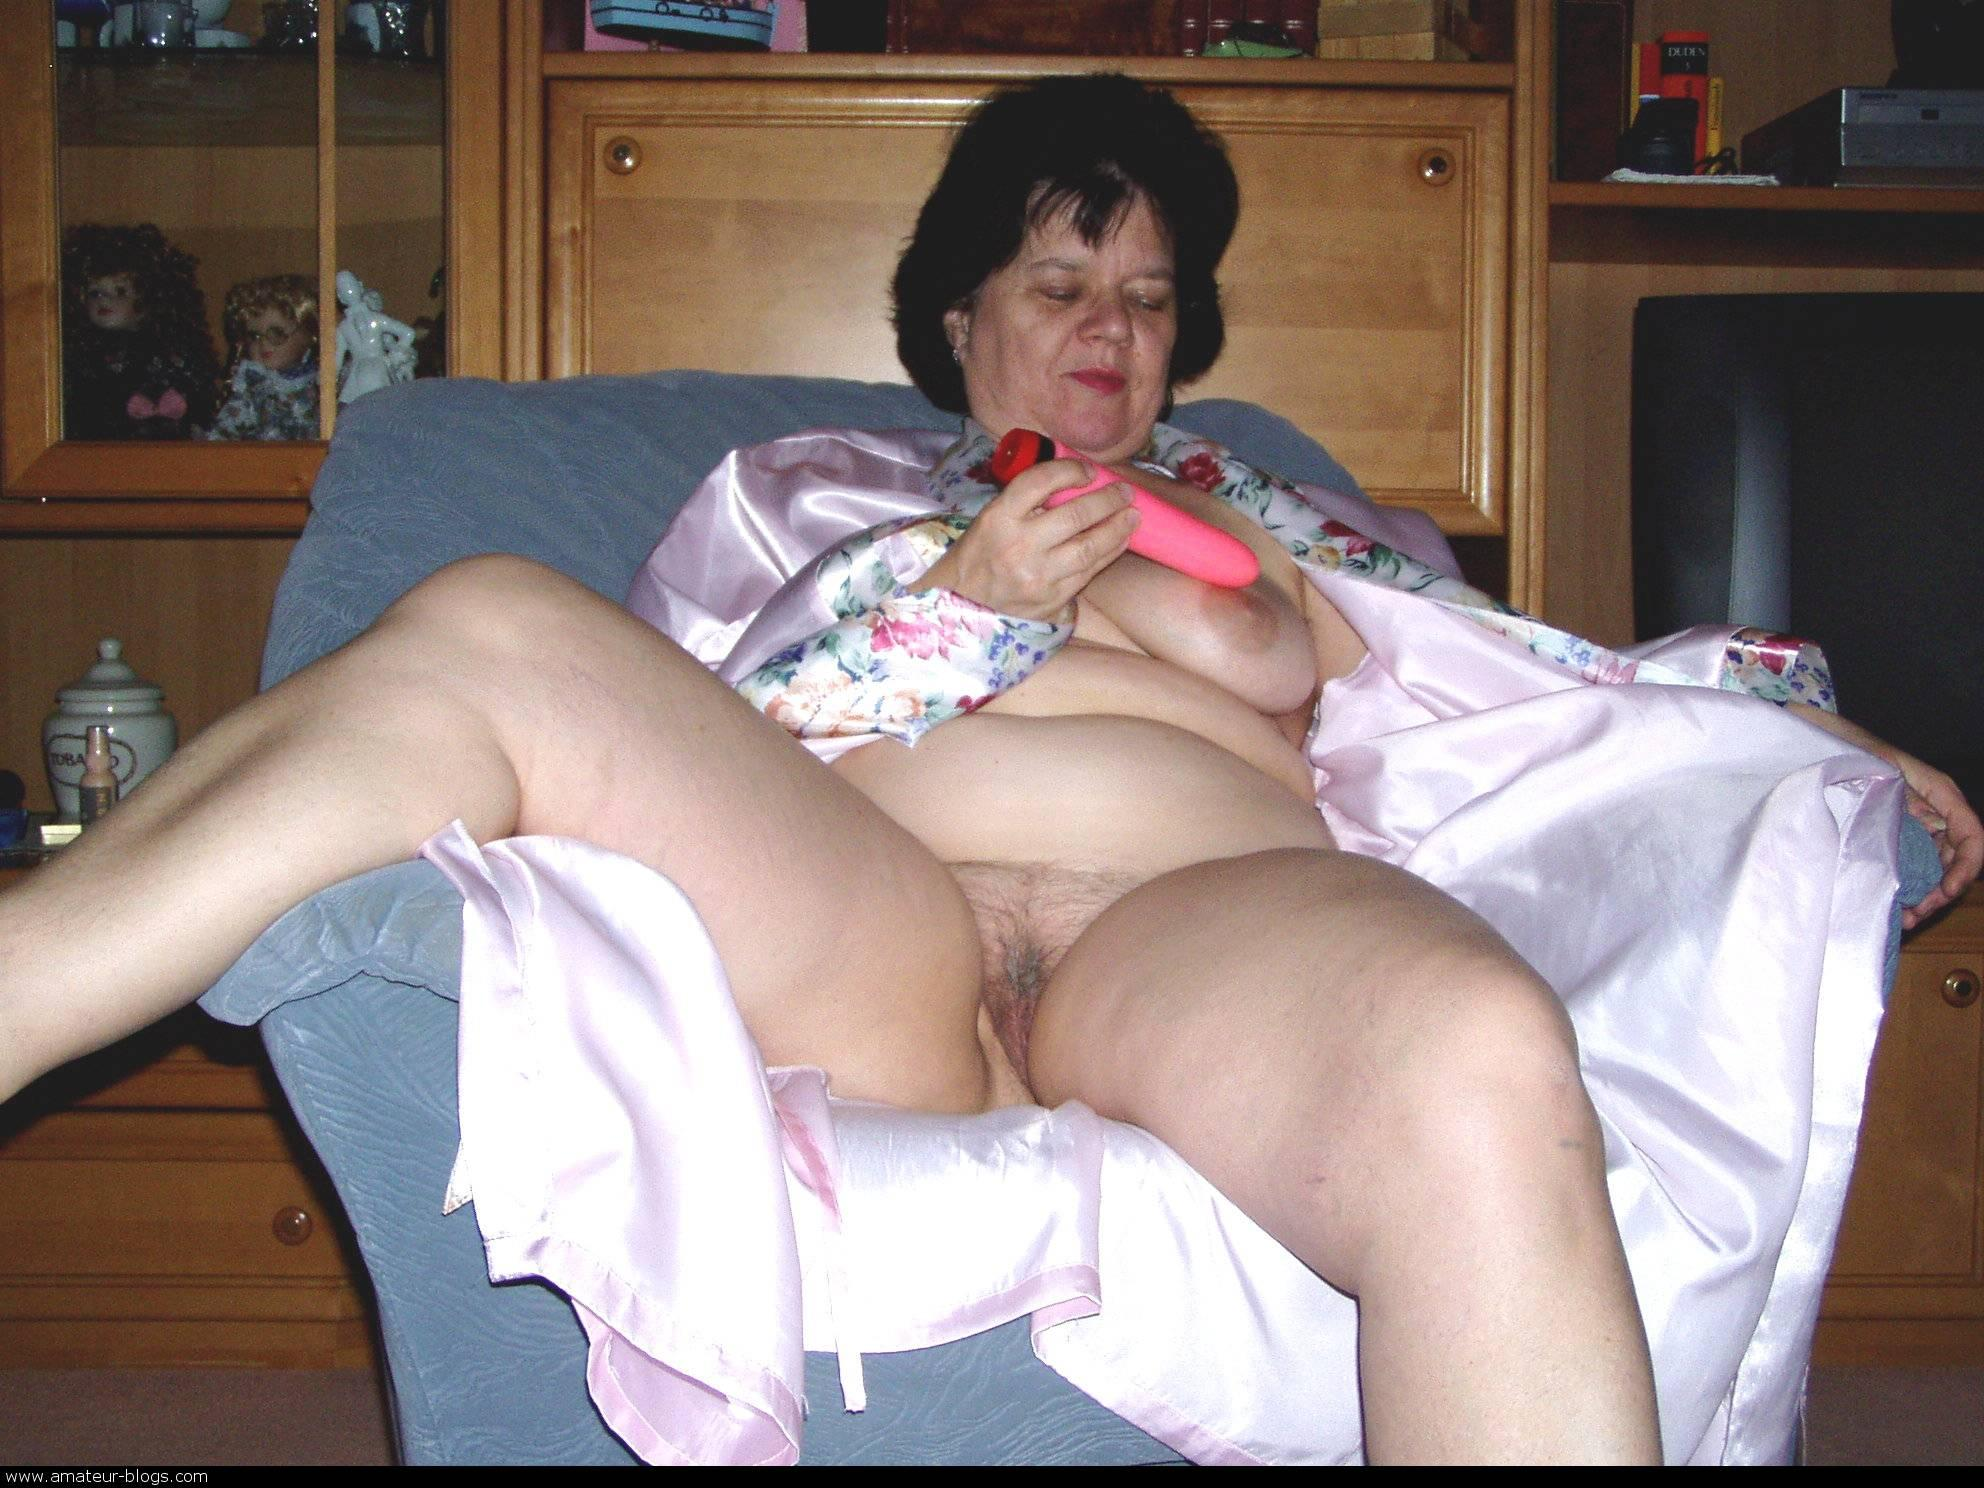 Nancy ,a  lusty granny who loves to take it  in her mouth